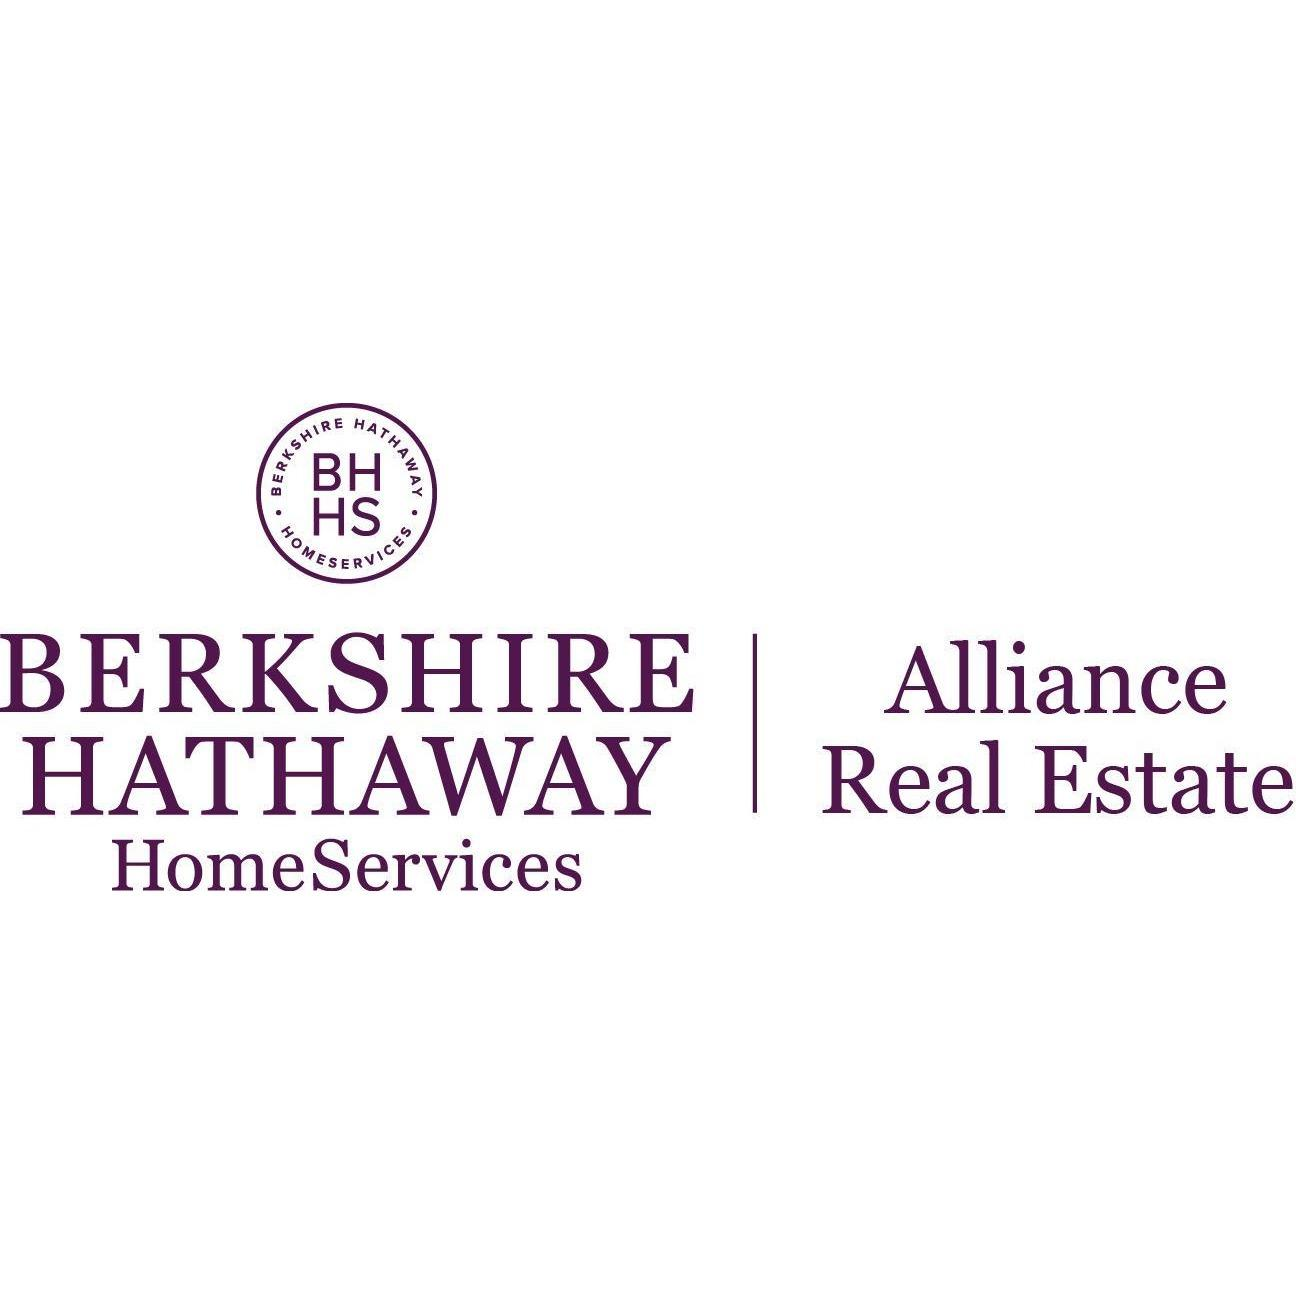 Randy Bandy | Berkshire Hathaway HomeServices Alliance Real Estate